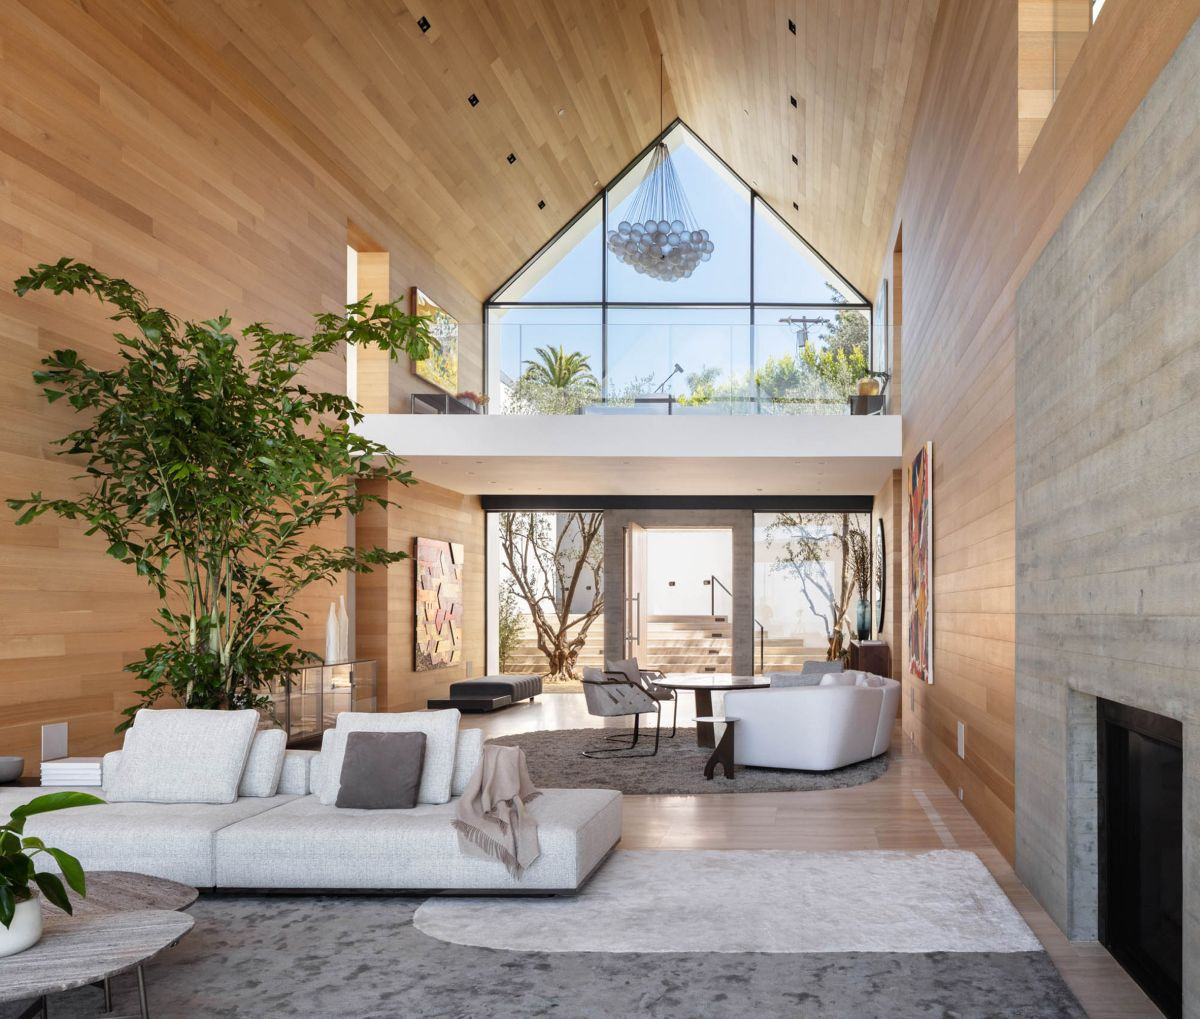 The living room has 30 ft (9m) high ceiling and that gives it a very open and airy look